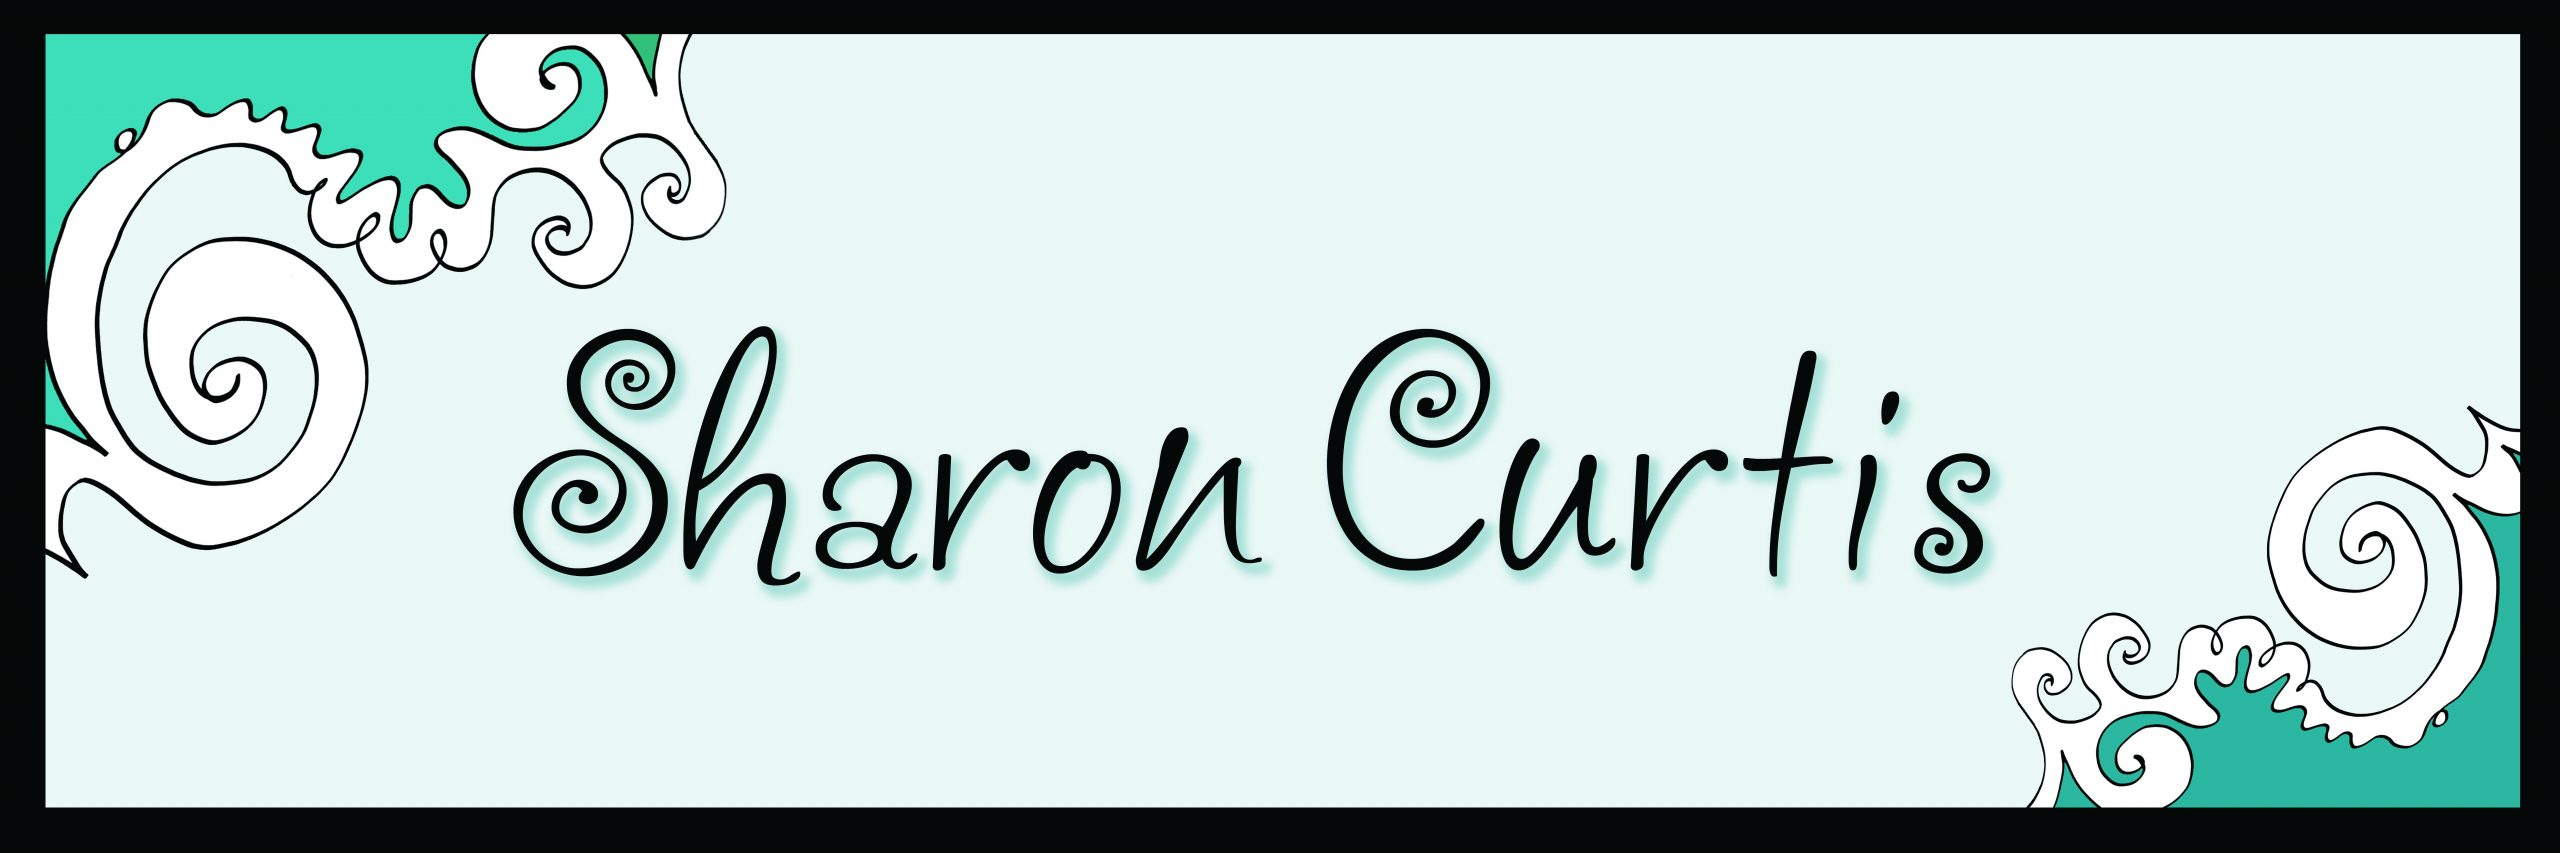 Sharon Curtis Designs